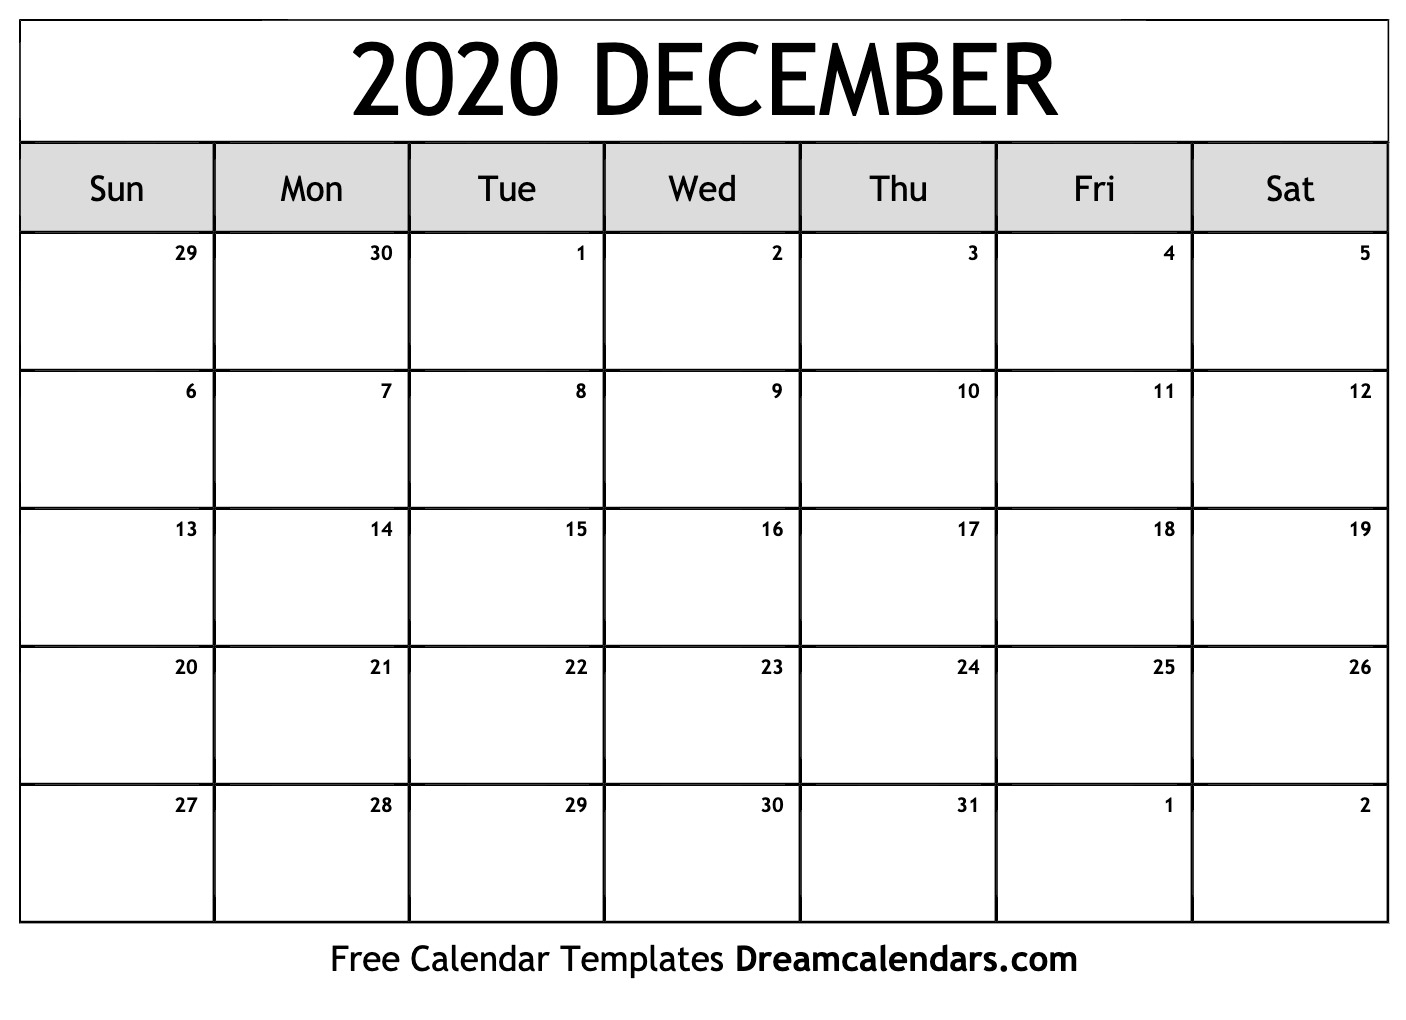 Free December 2020 Printable Calendar | Dream Calendars